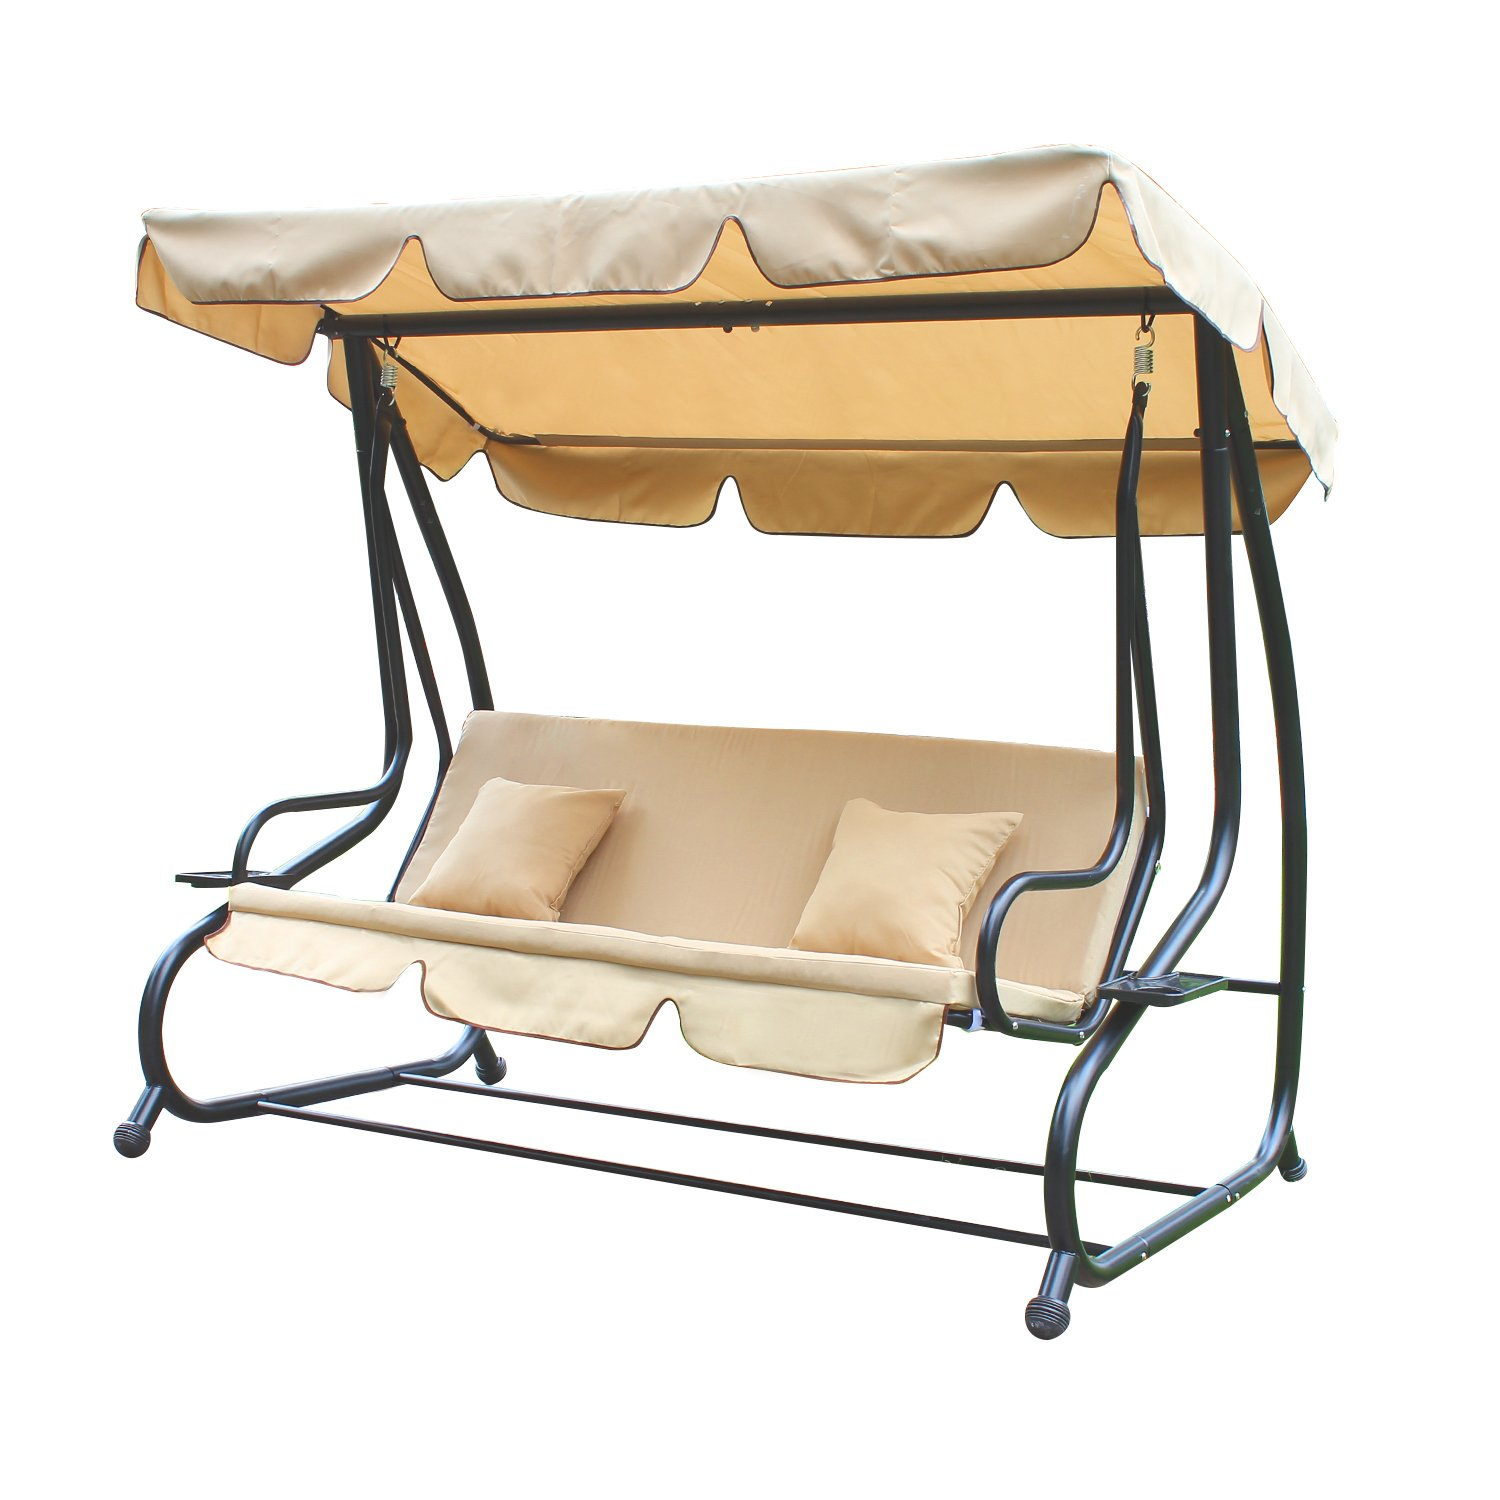 Adeco Canopy Awning Porch Swings Bench Outdoor Chair For Two Beige Ebay